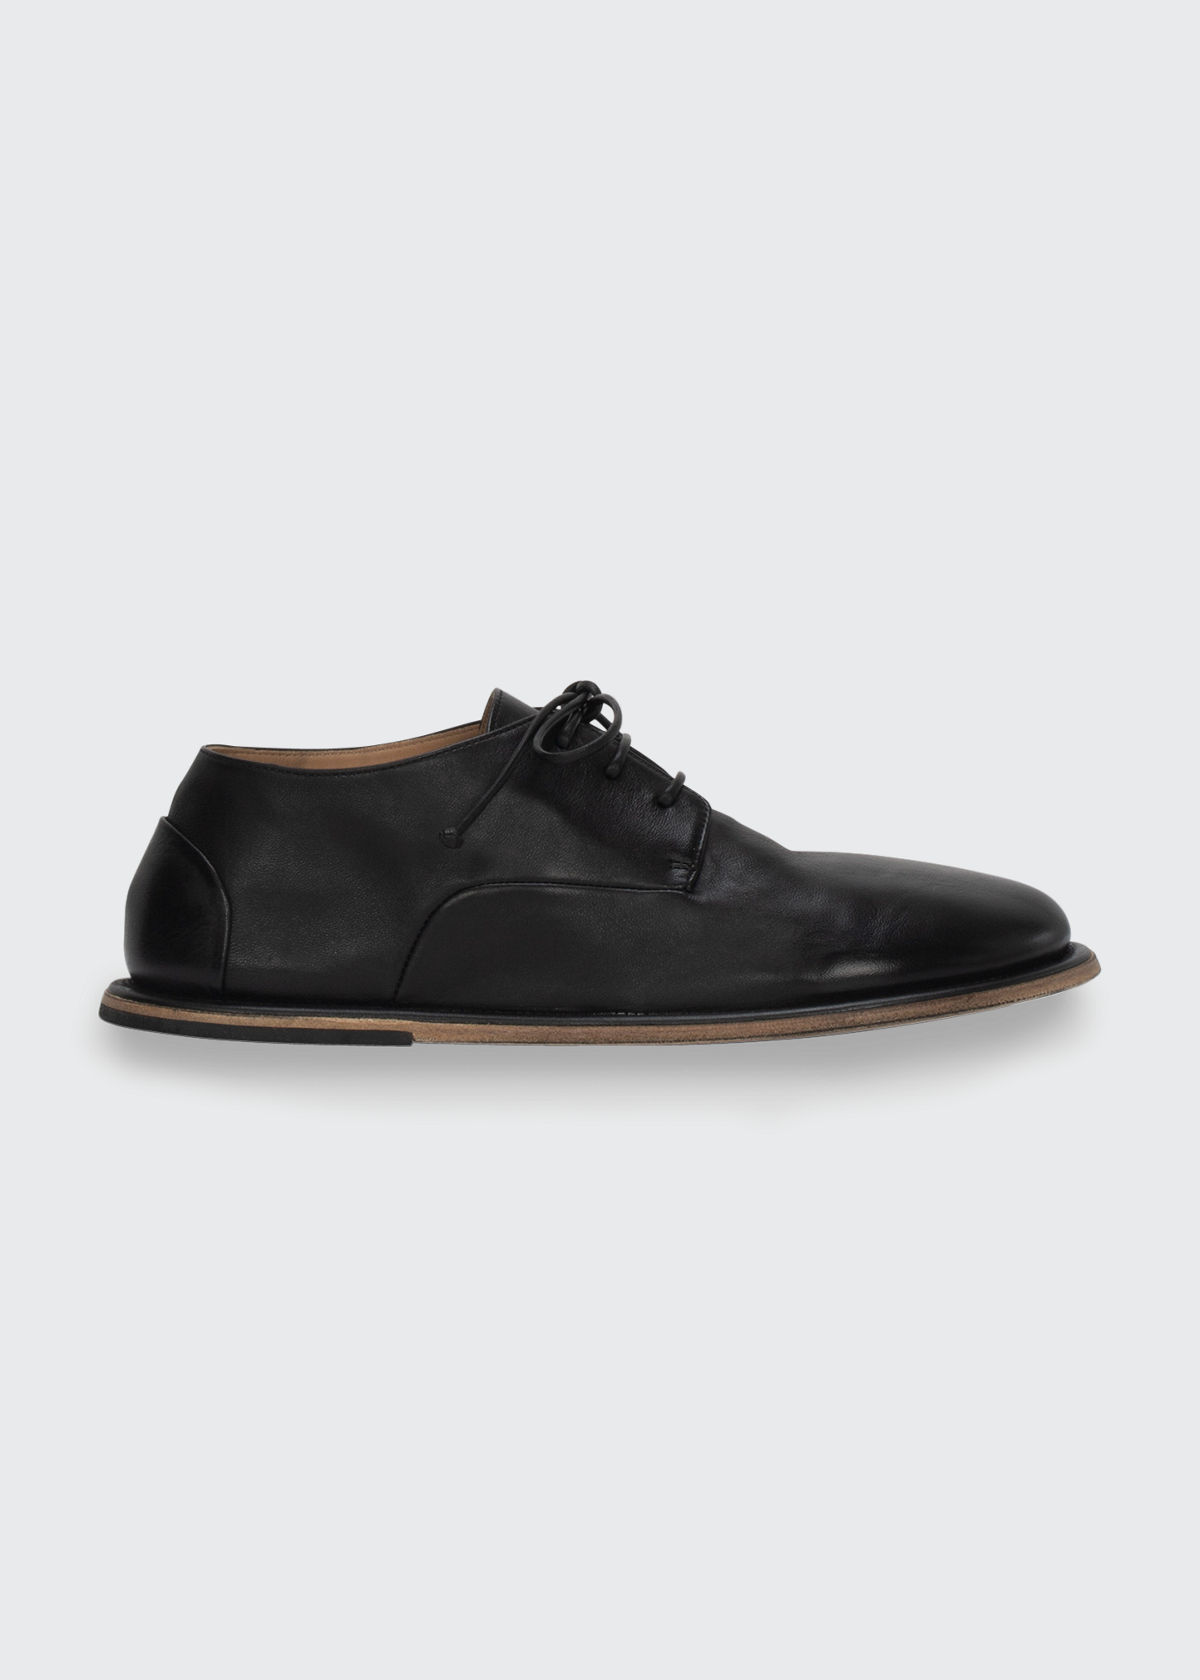 Marsèll LEATHER LACE-UP FLAT LOAFERS